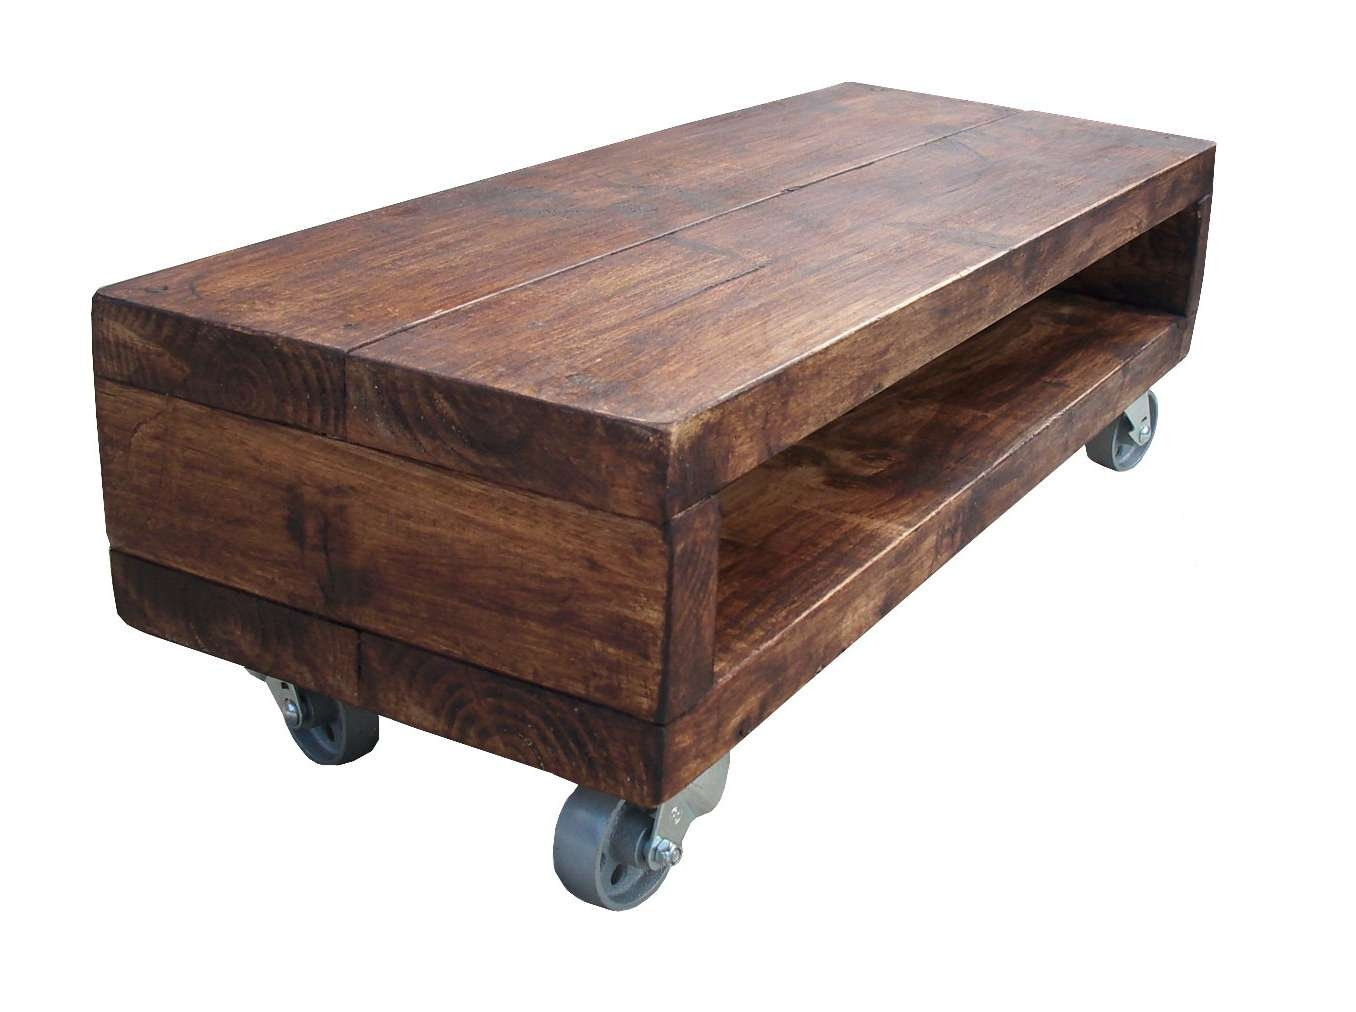 Tv Stands With Wheels Regarding Wooden Tv Stands With Wheels (View 13 of 15)